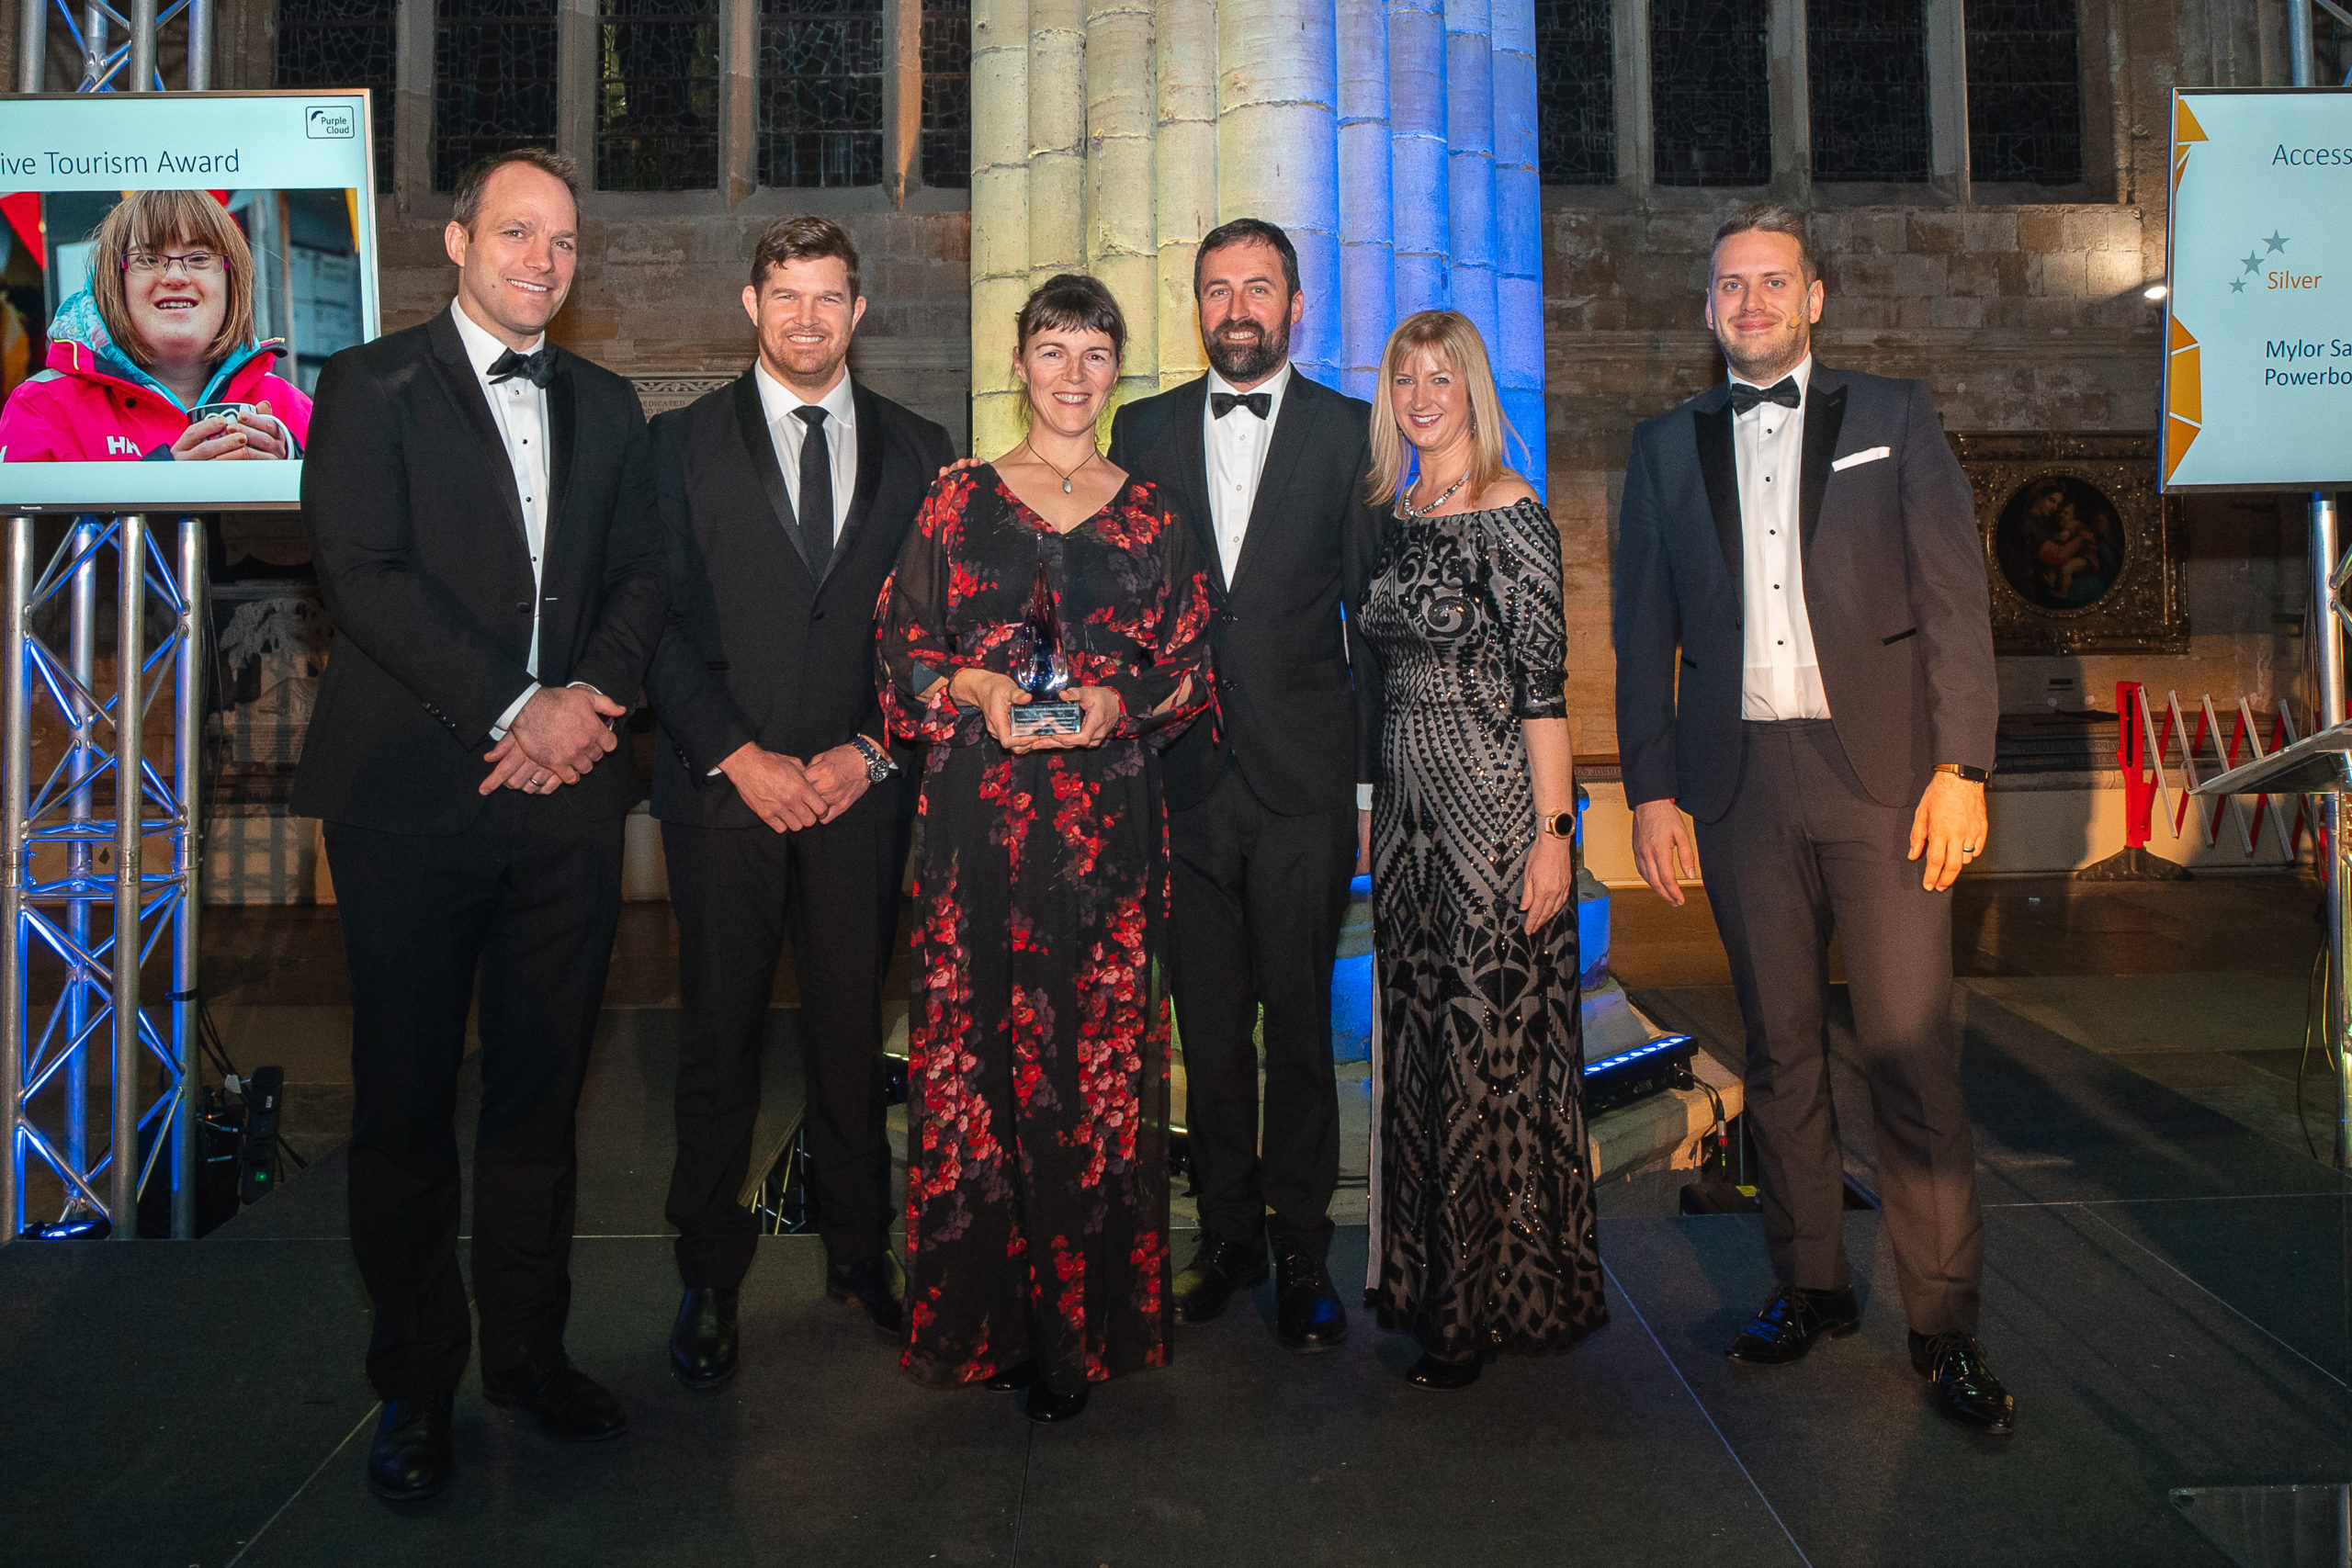 Six of the people in Exeter Cathedral accepting an award at the ceremony